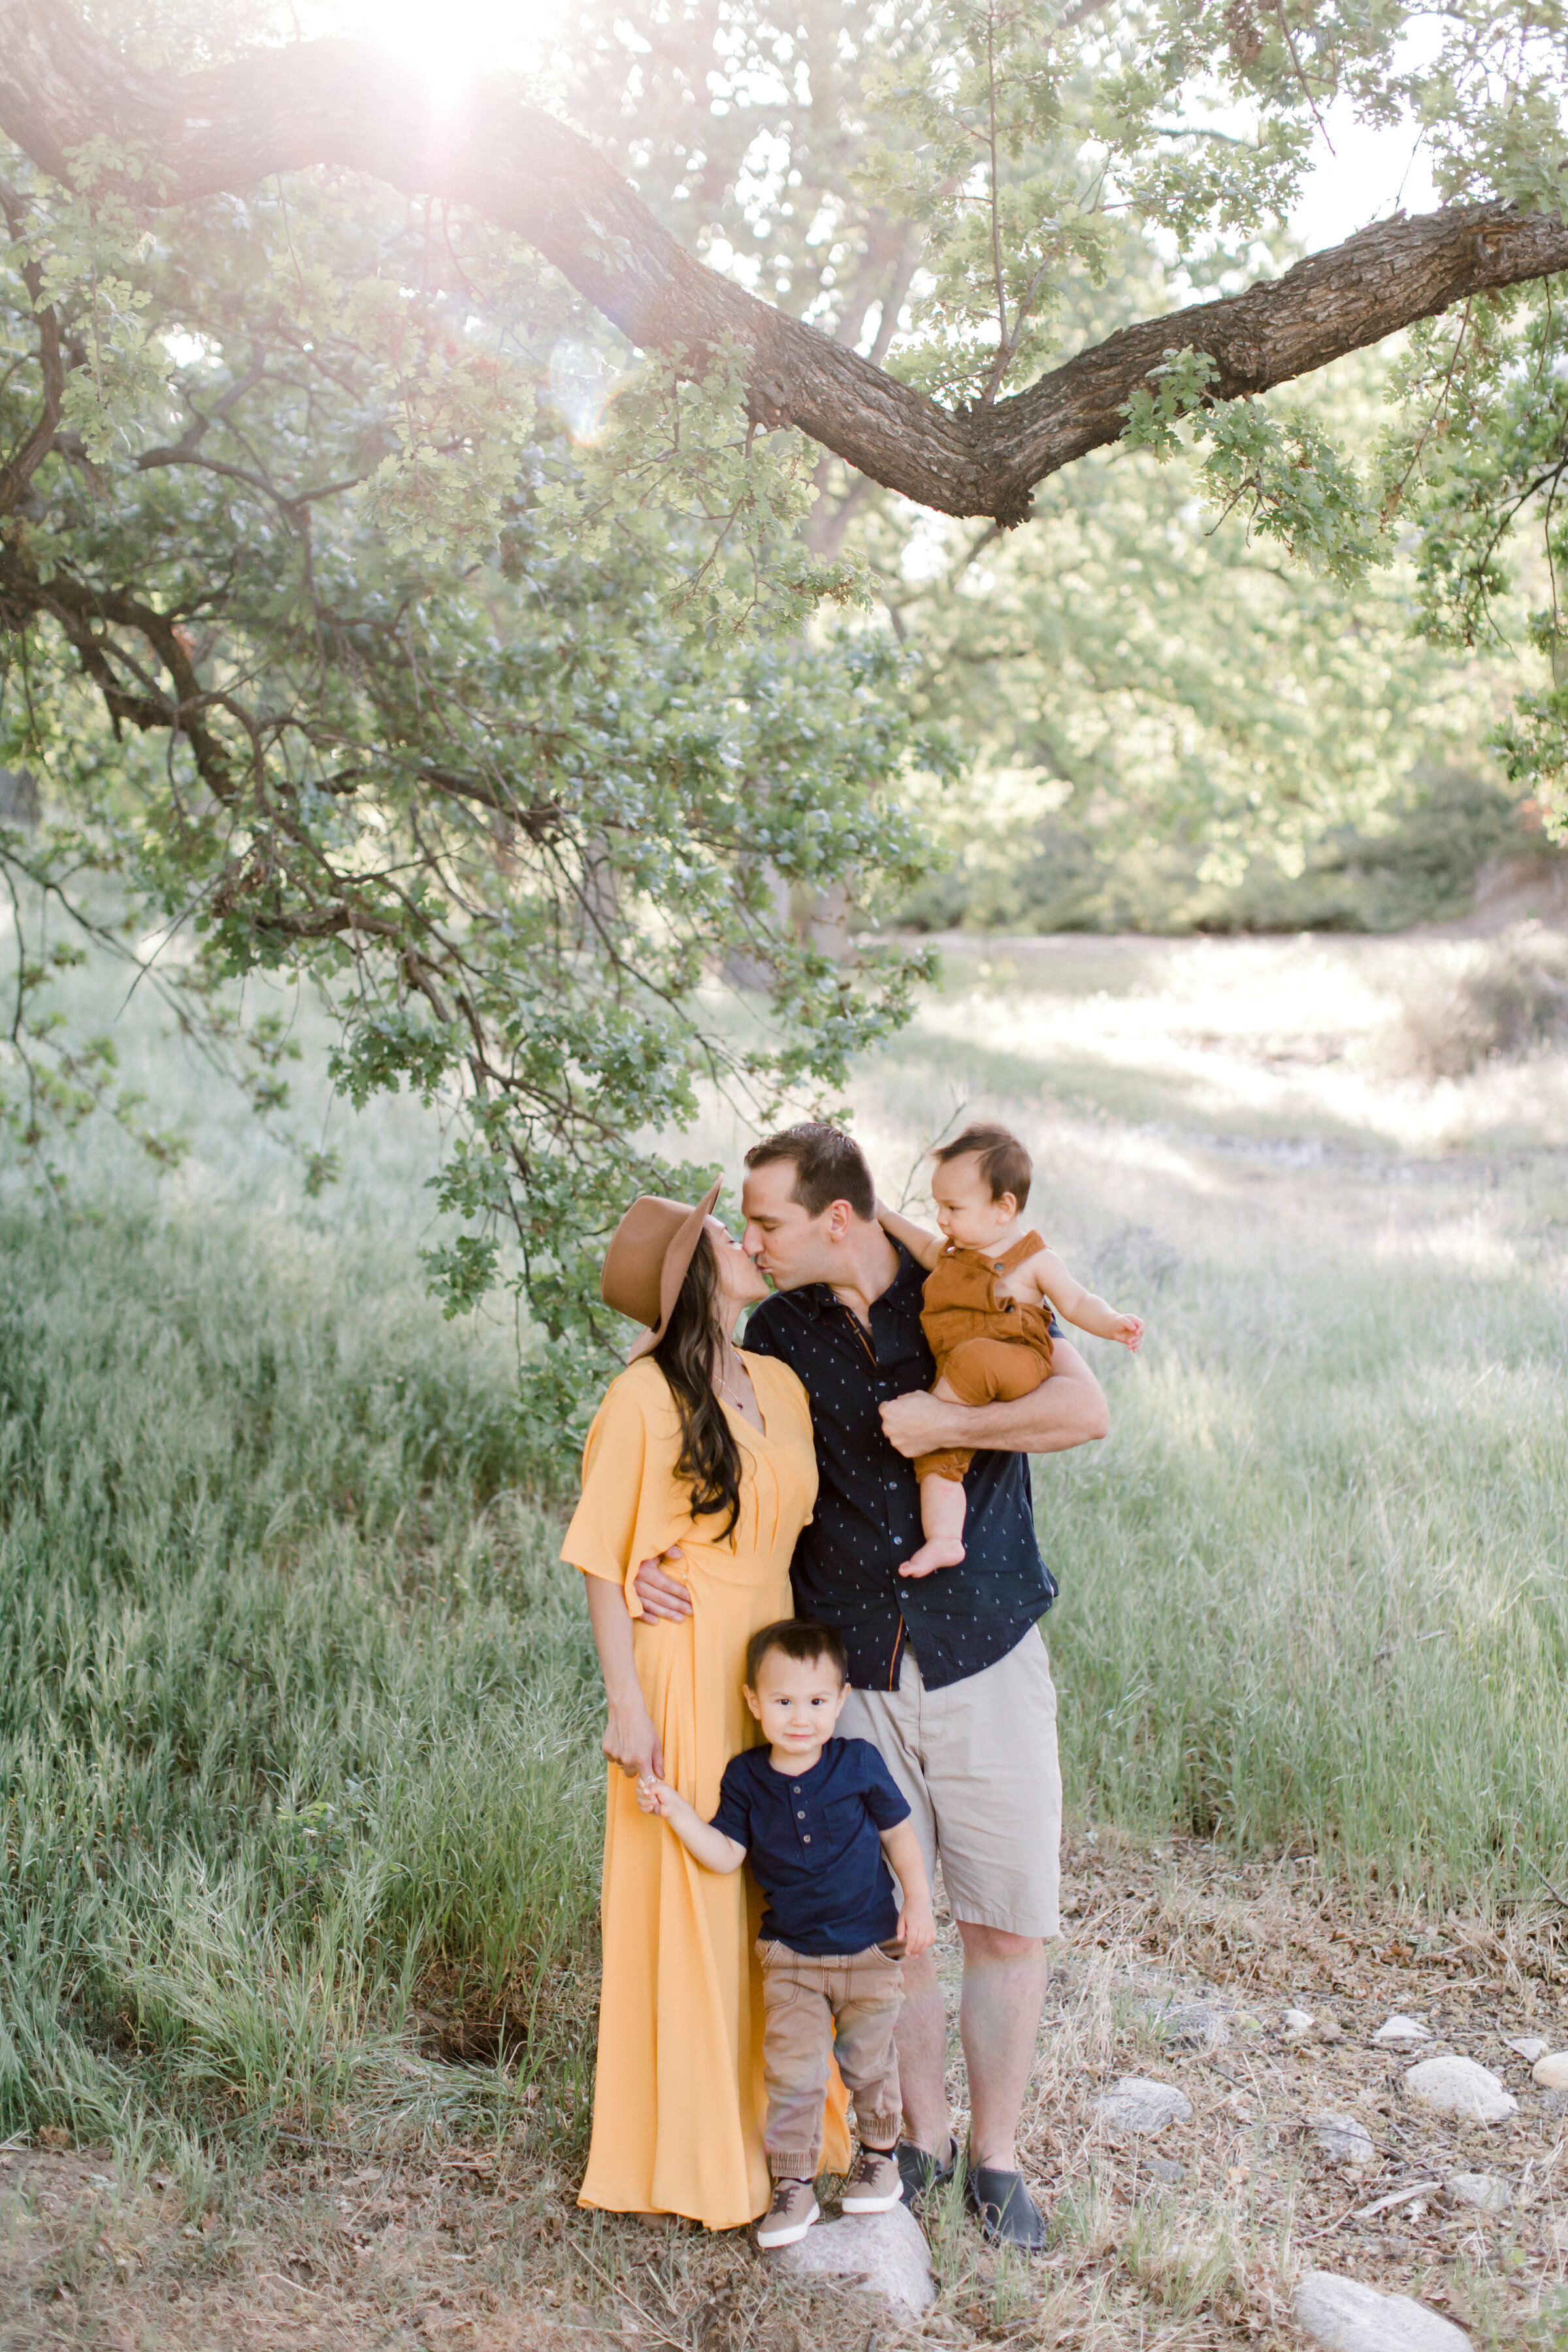 Kosel Family - Sneak Peeks (9 of 30)